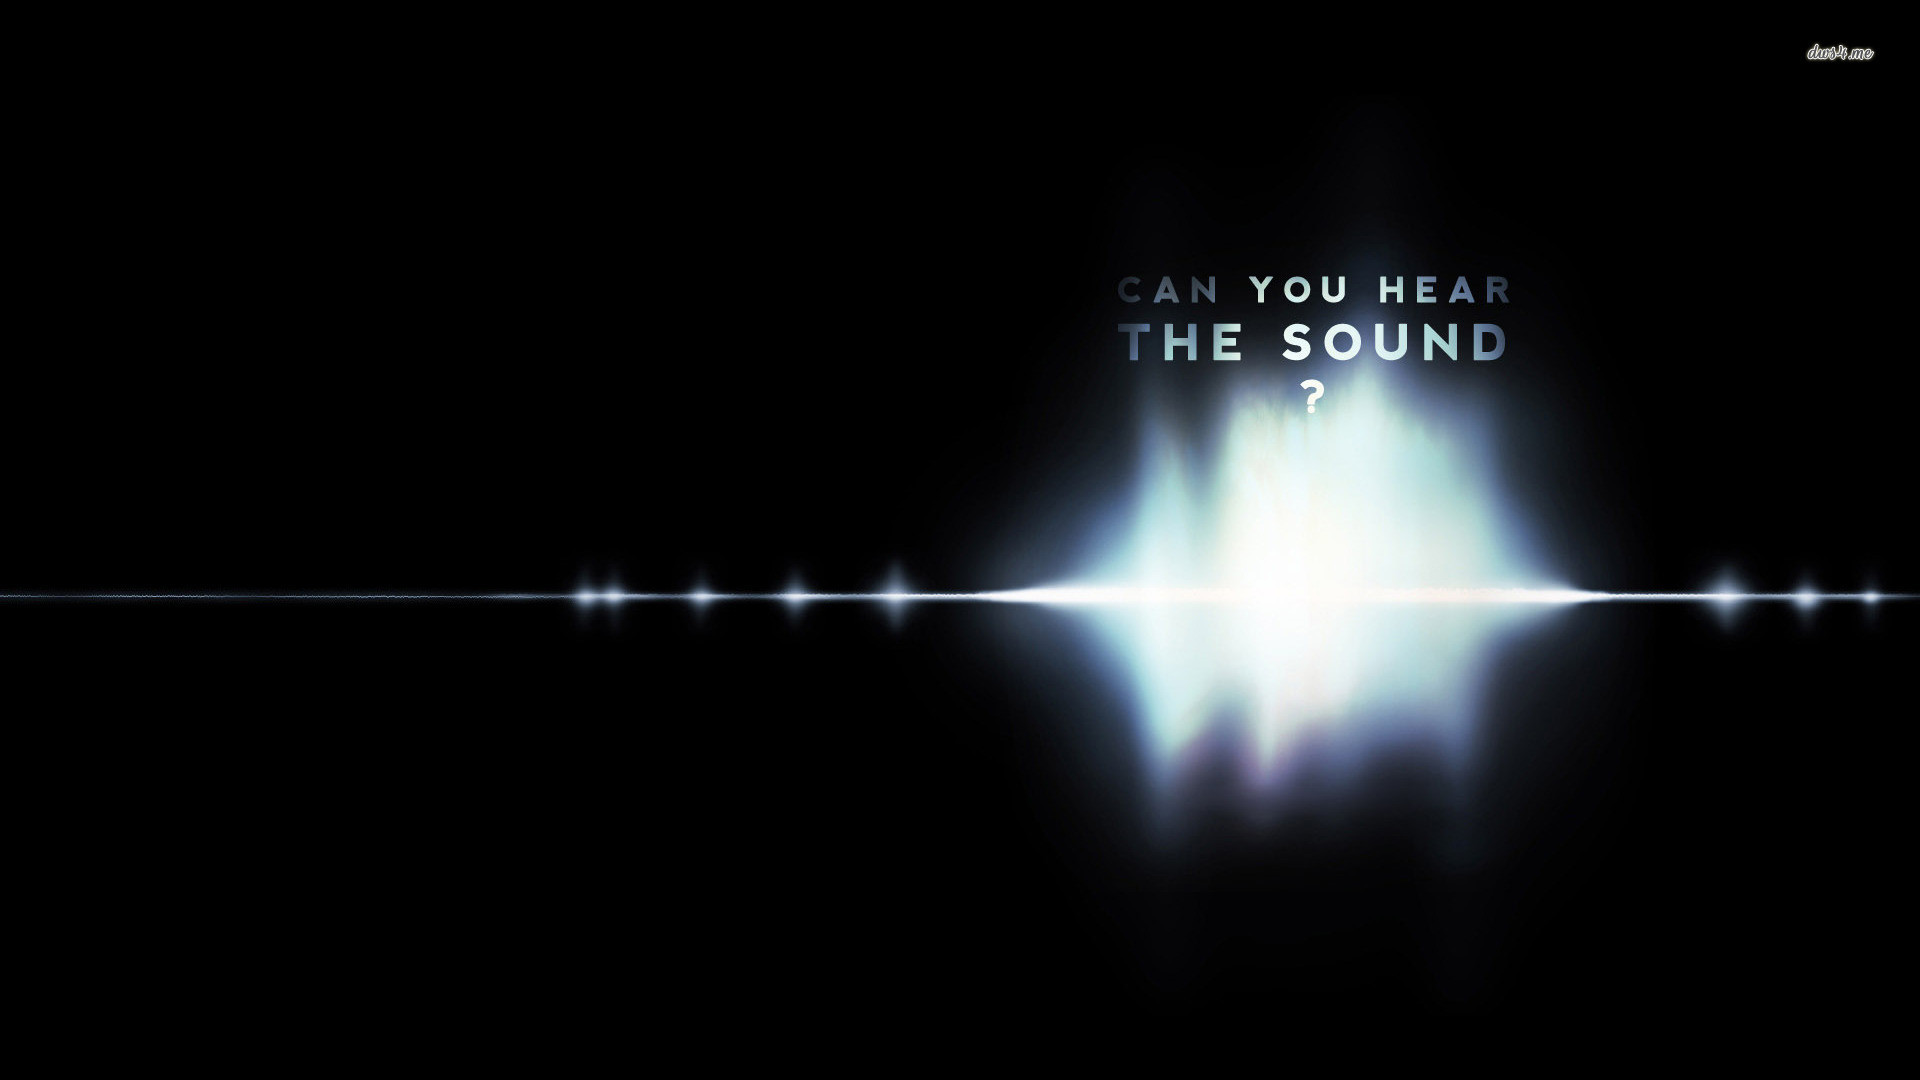 10140 can you hear the sound 1920×1080 music wallpaper